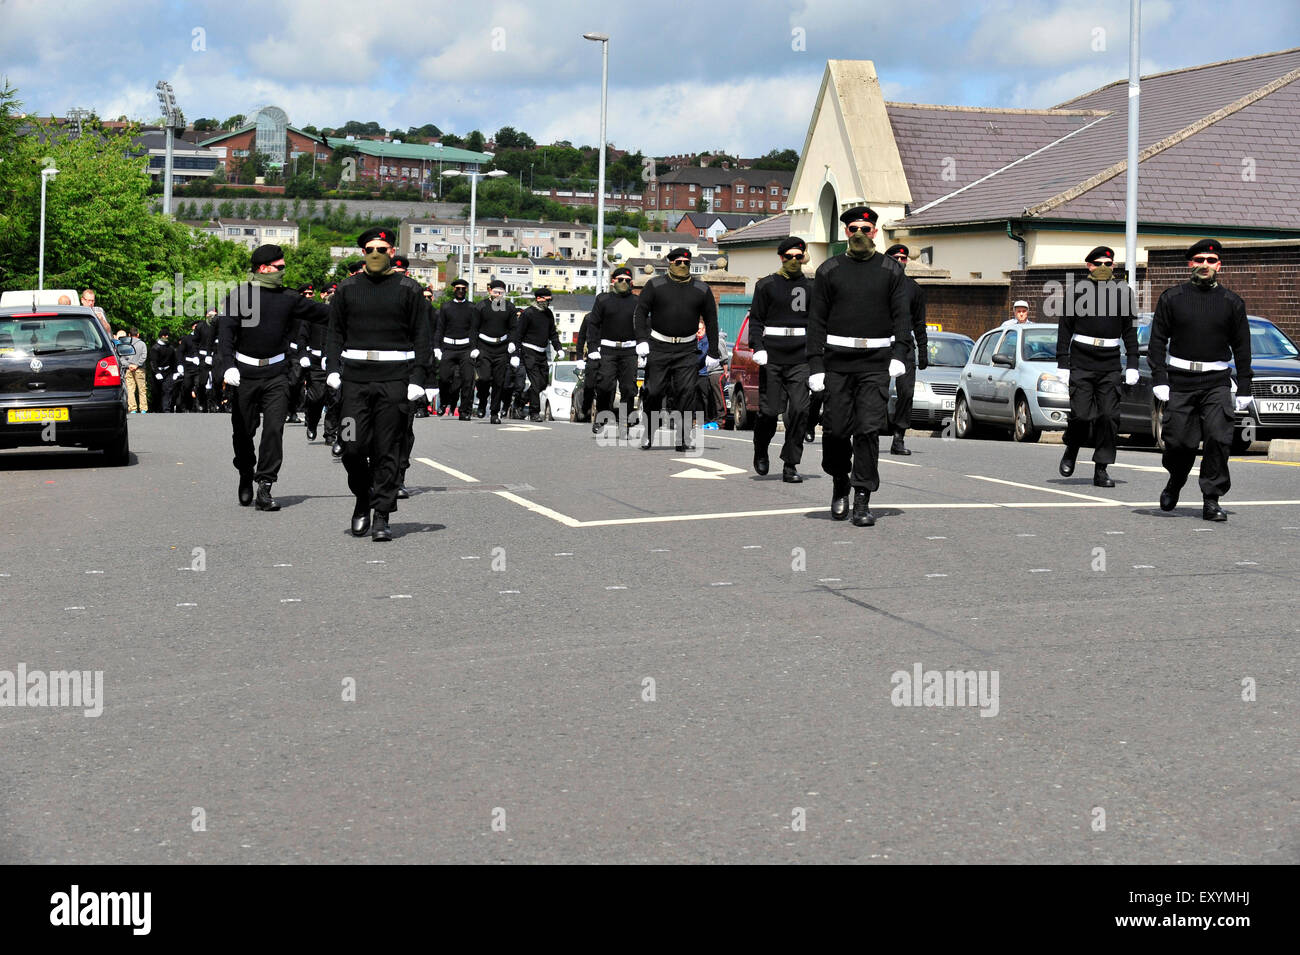 Londonderry, Northern Ireland, UK. 18 July, 2015. Funeral of prominent Irish Republican, Peggy O'Hara. Members of Stock Photo